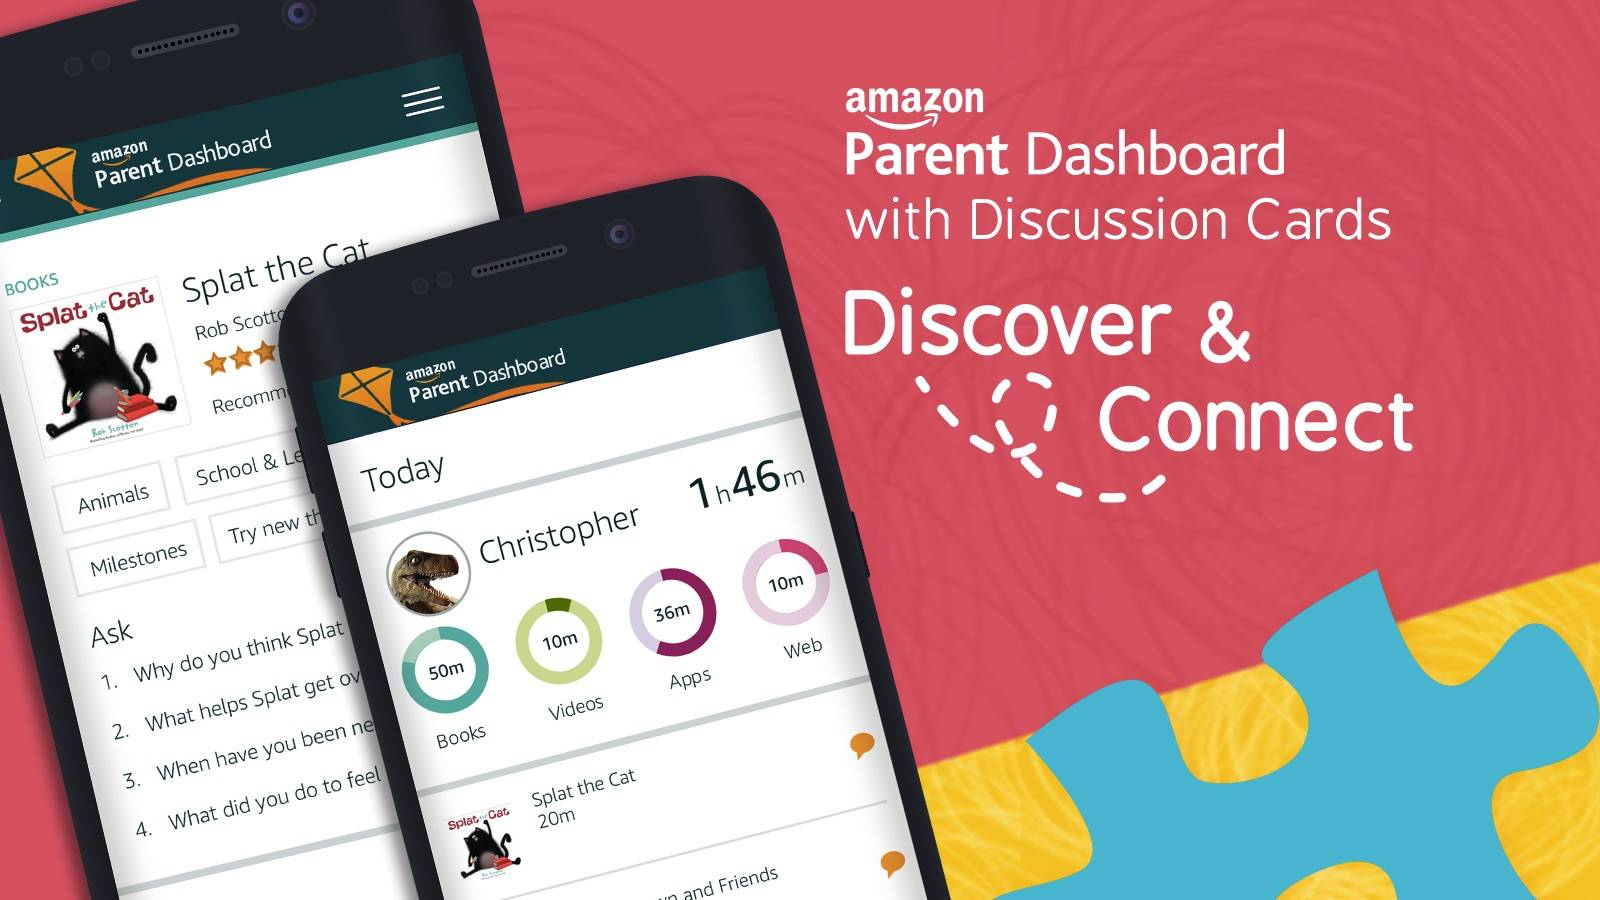 Amazon FreeTime Unlimited now available for Android